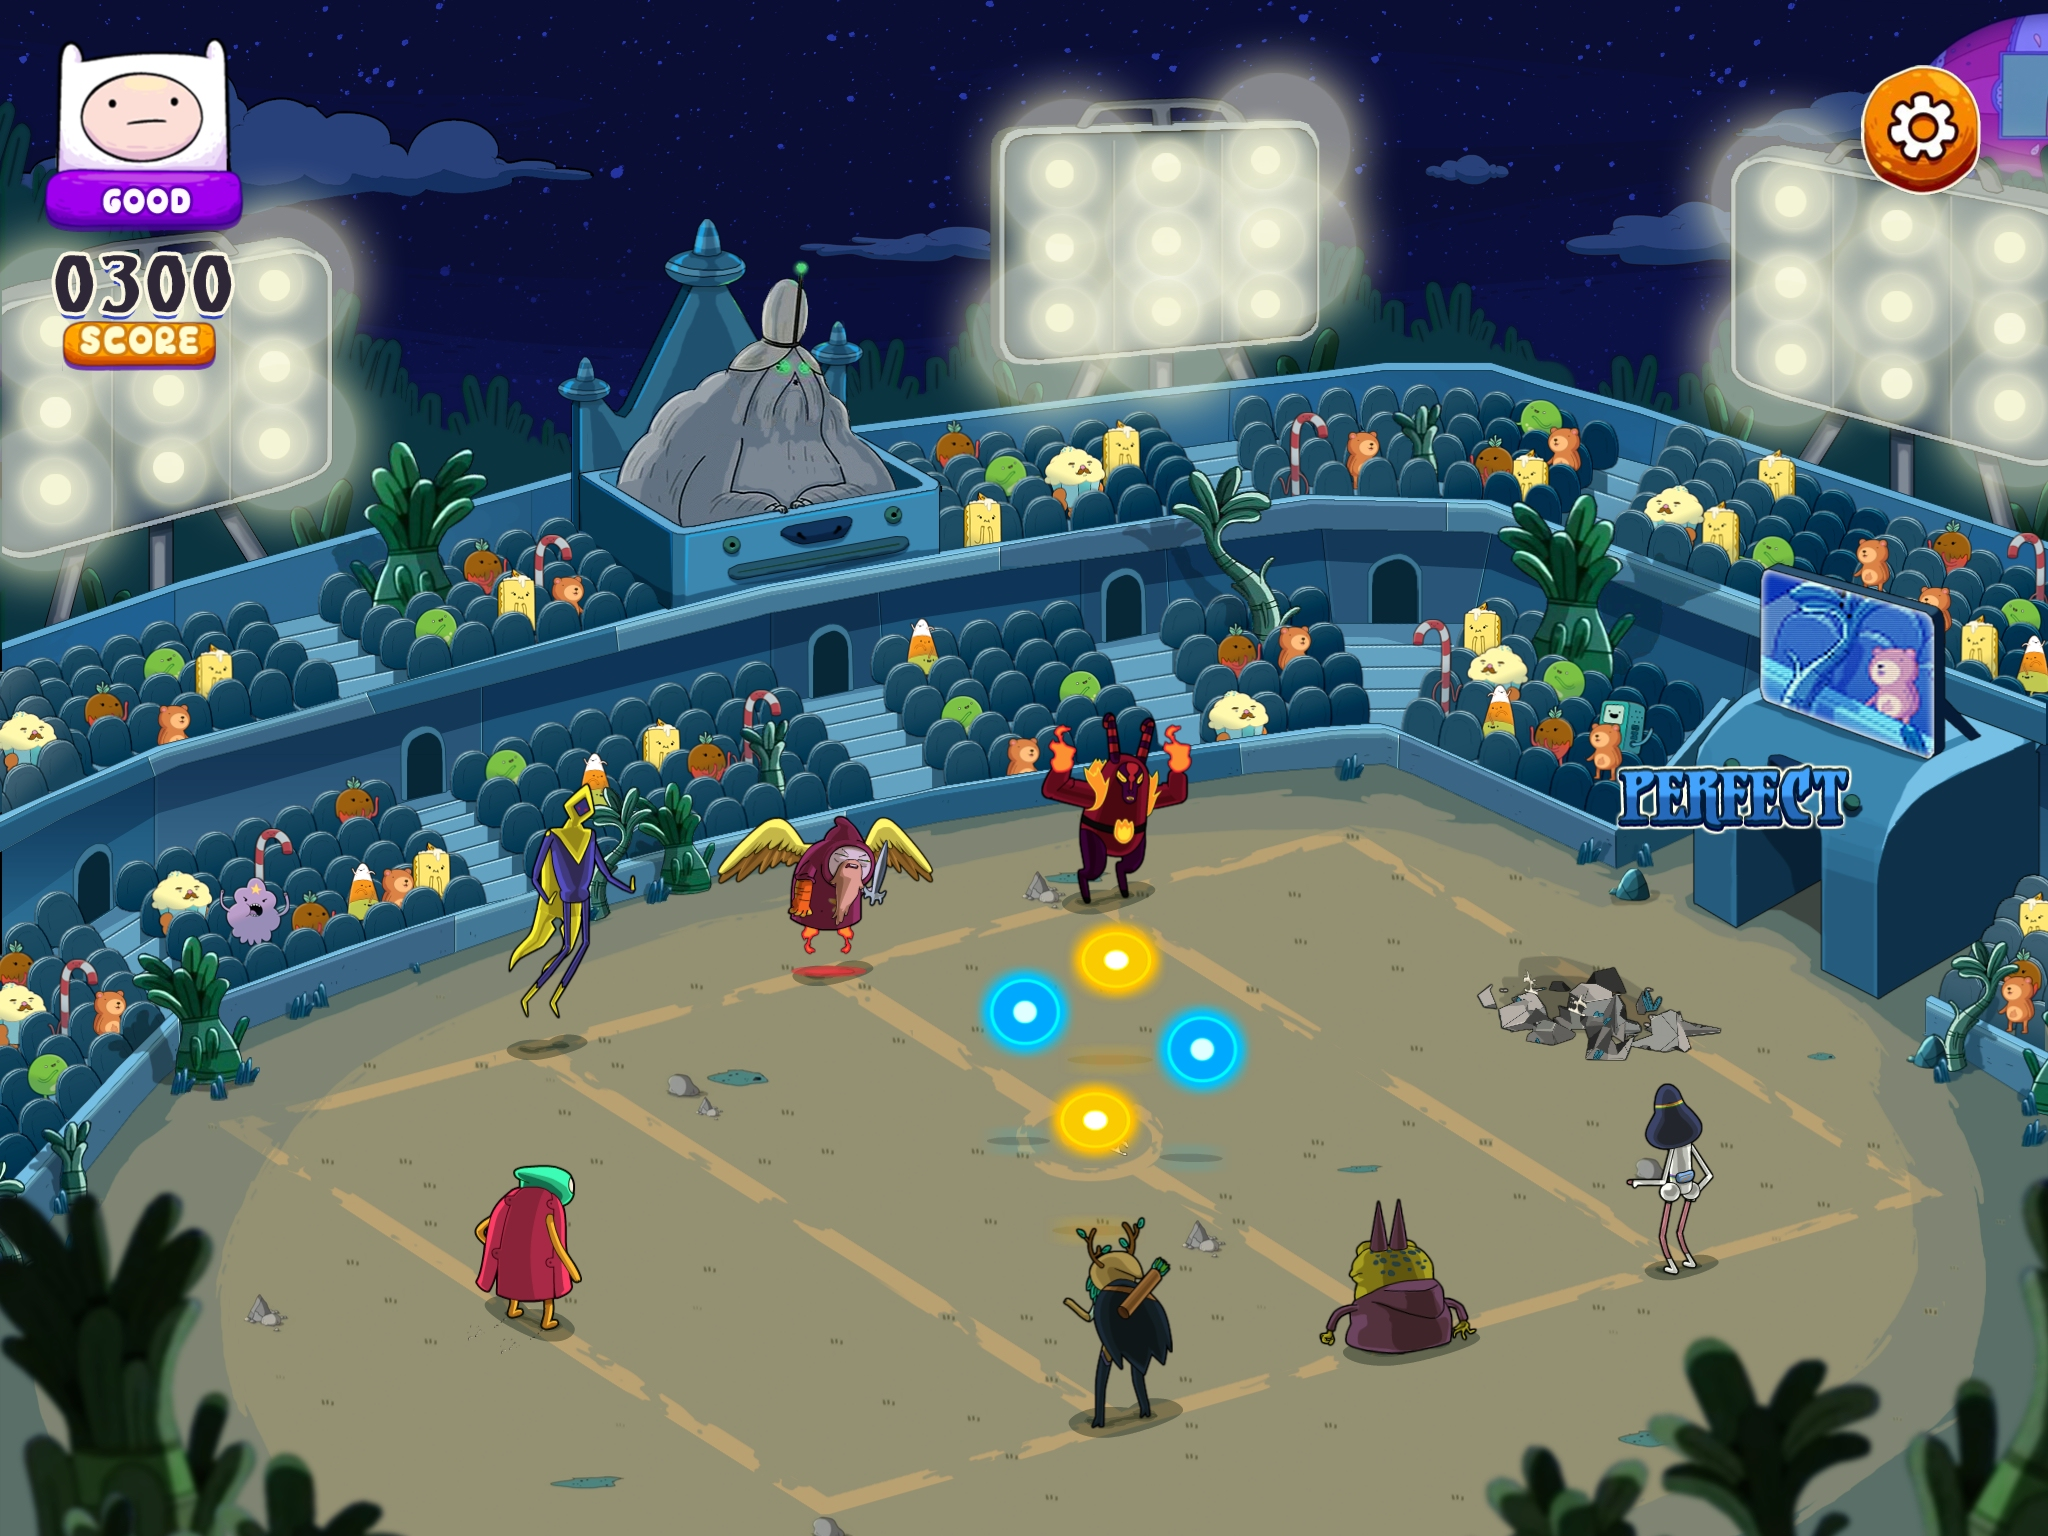 Rockstars of Ooo - Adventure Time Rhythm Game - Slave to the beasts